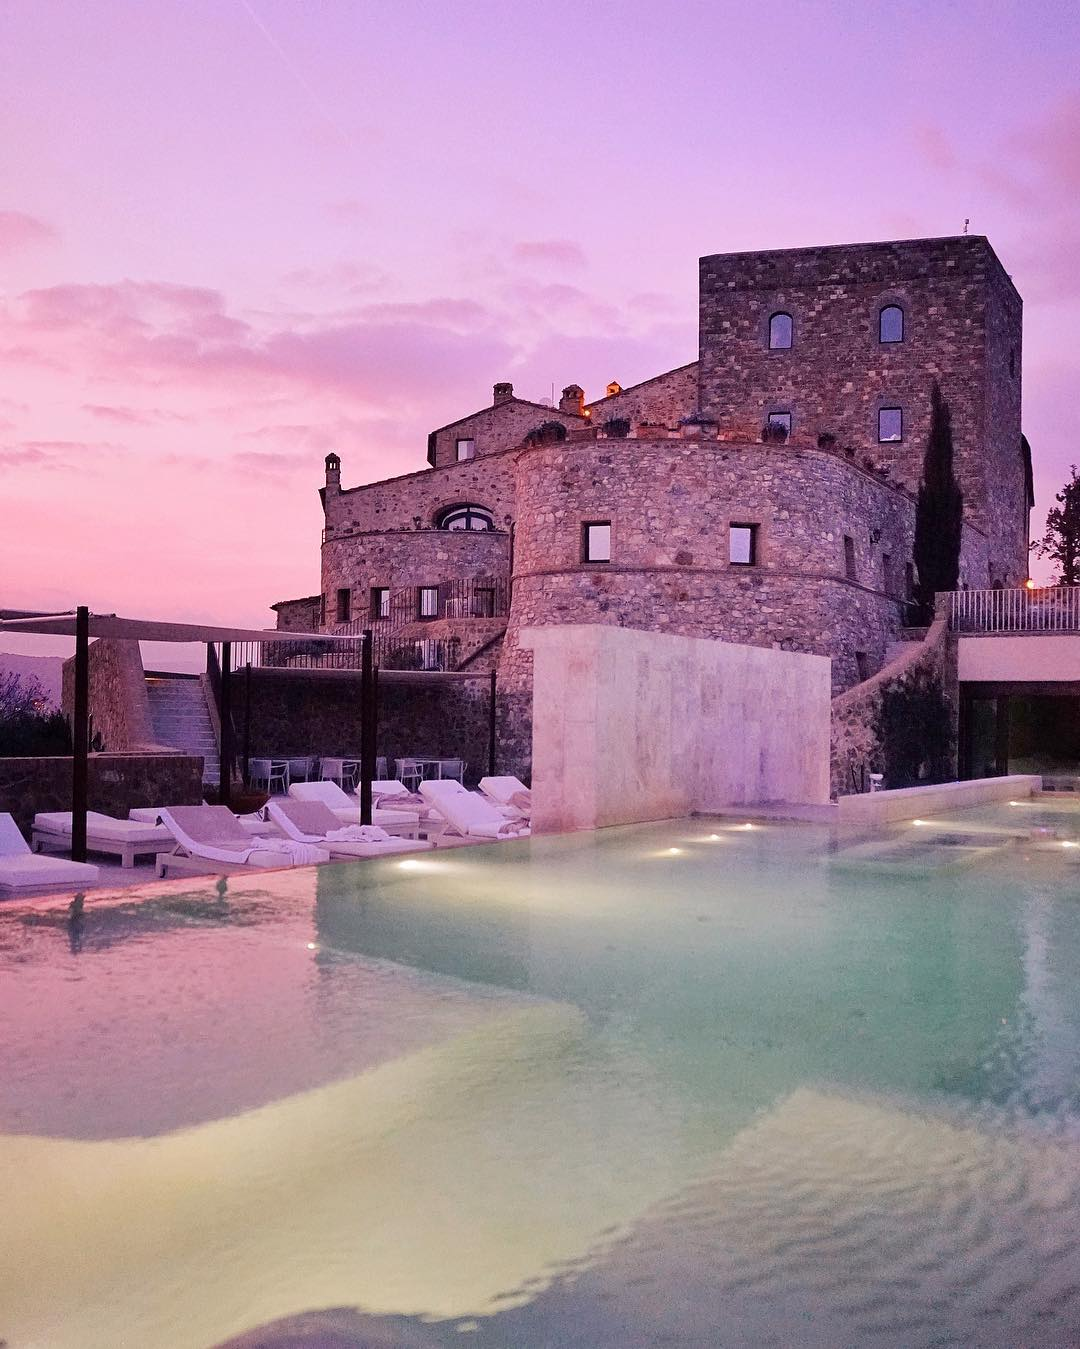 17333976_1473128092720559_5083368732852486144_n Dreamy weekend in a Tuscany ancient castle: Castello di Velona.